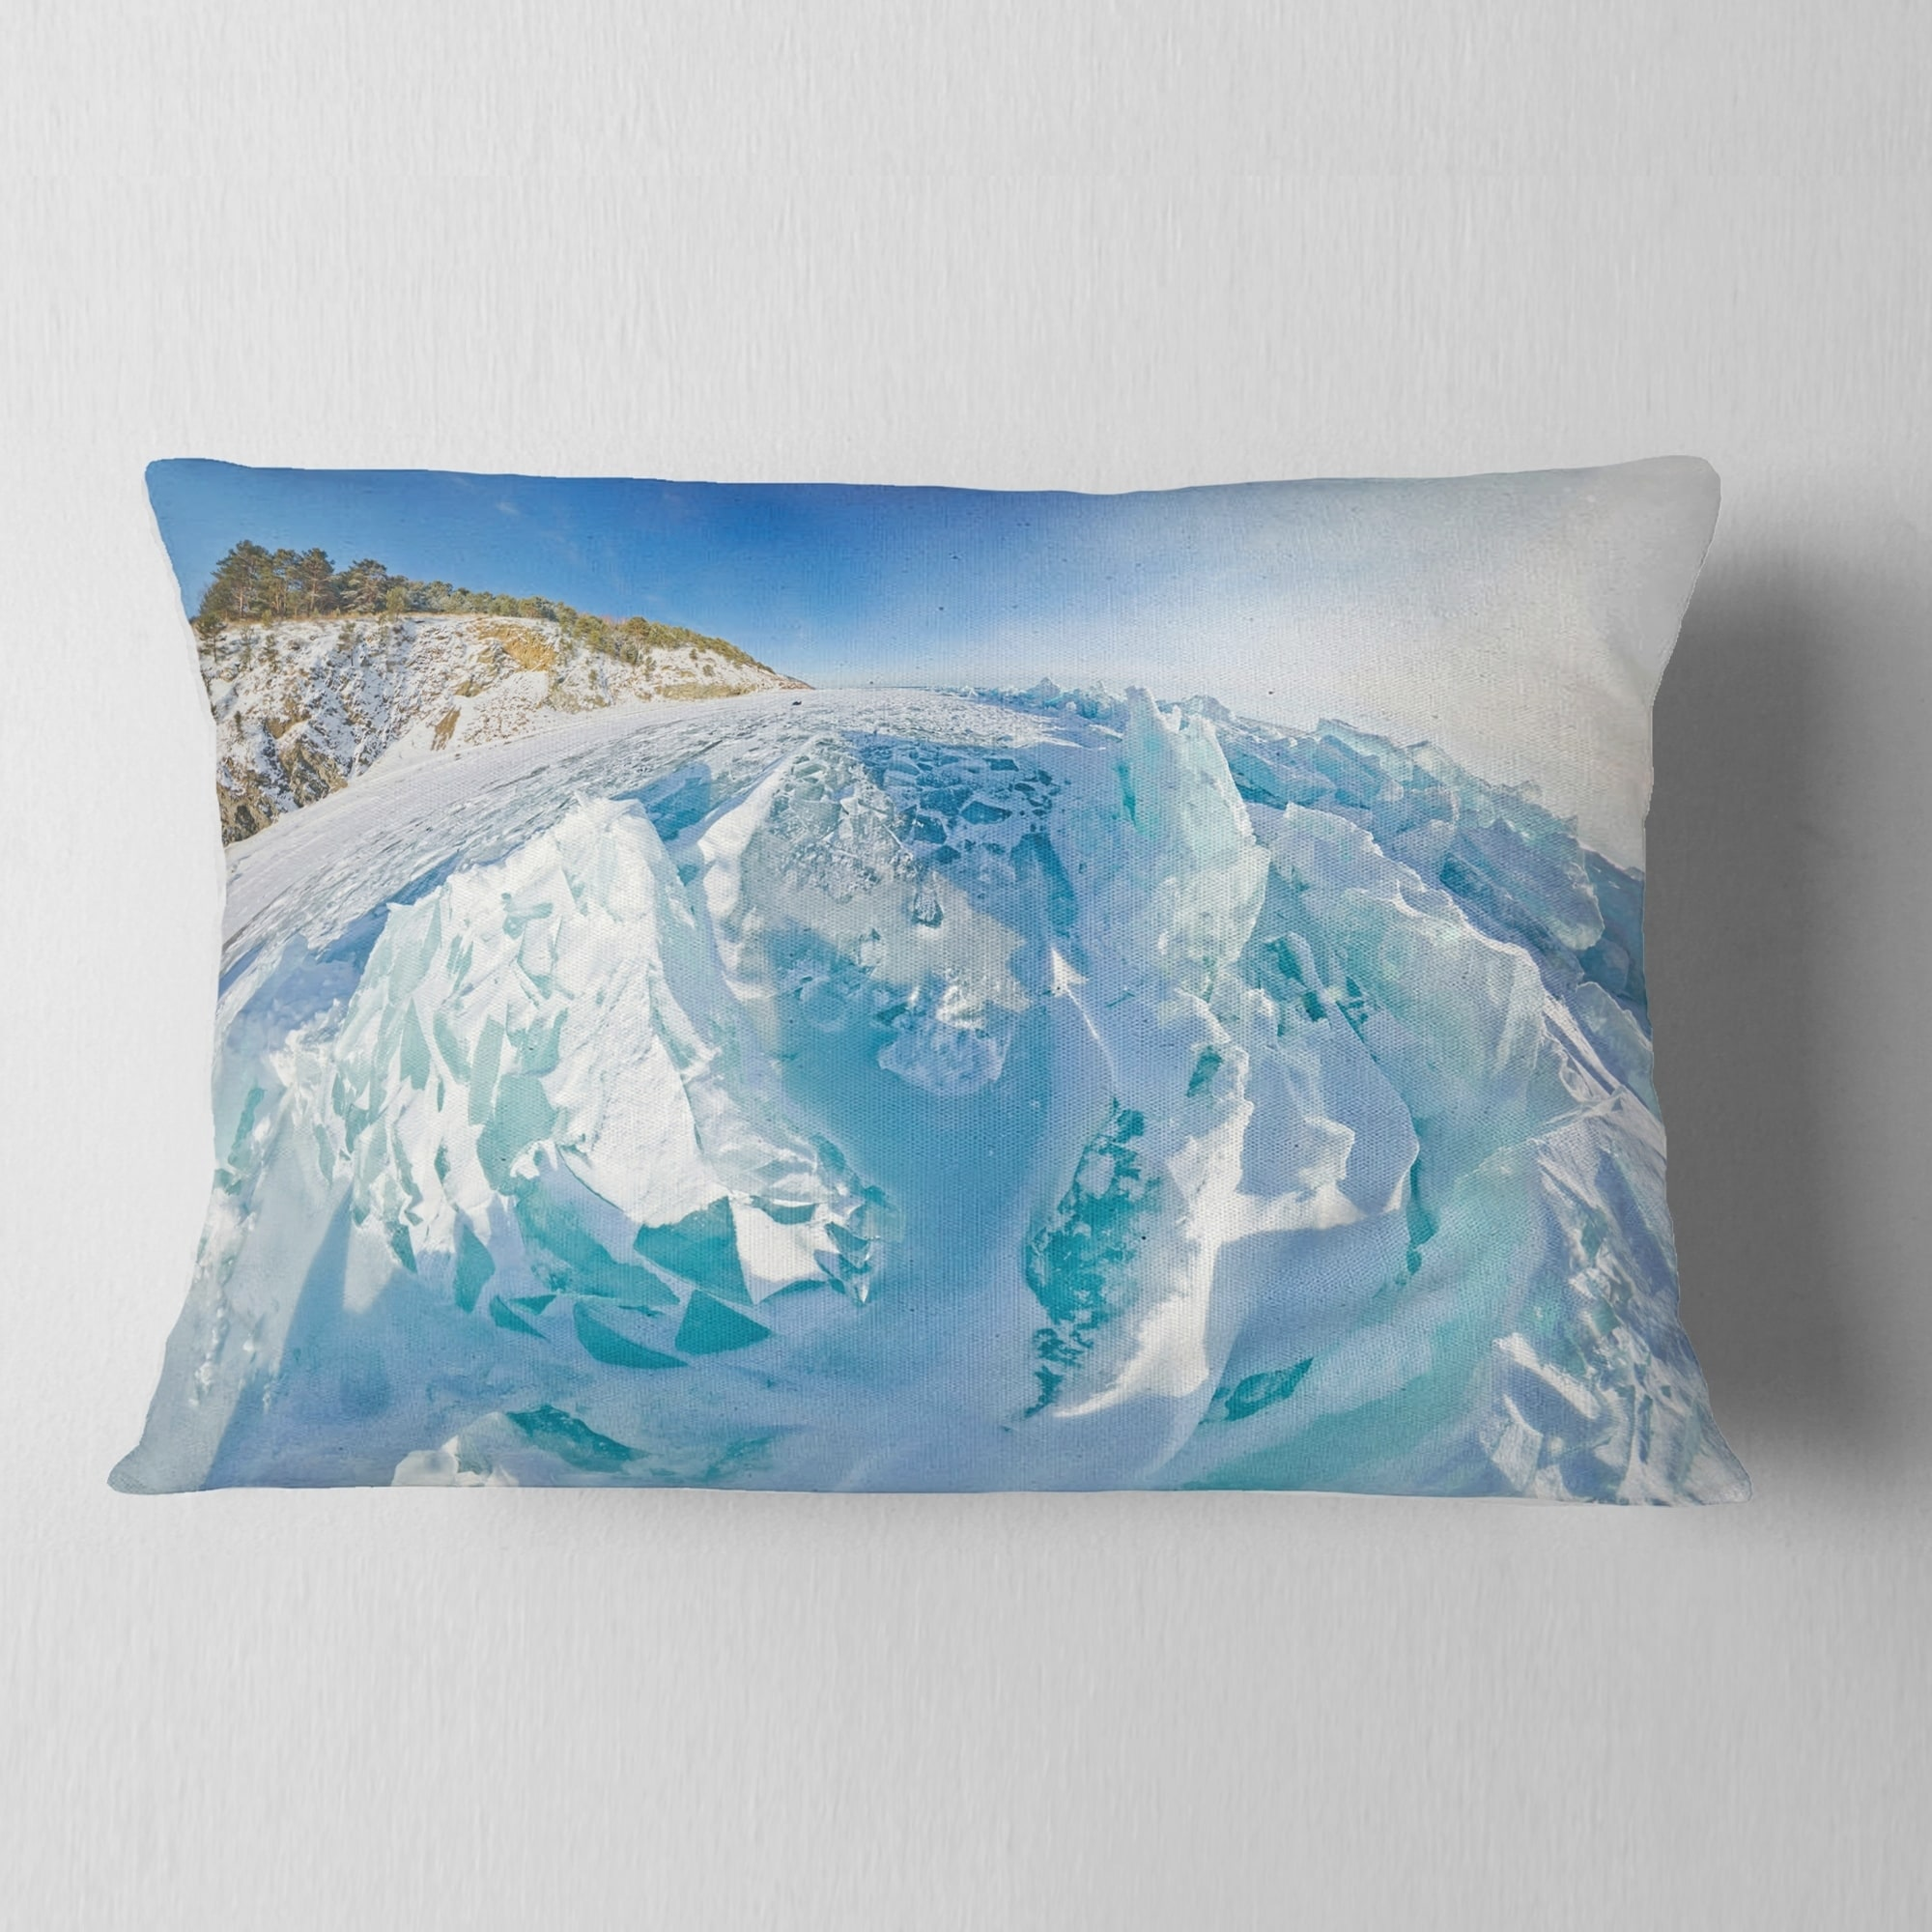 Designart Blue Ice Mountains In Lake Baikal Siberia Landscape Printed Throw Pillow On Sale Overstock 20945334